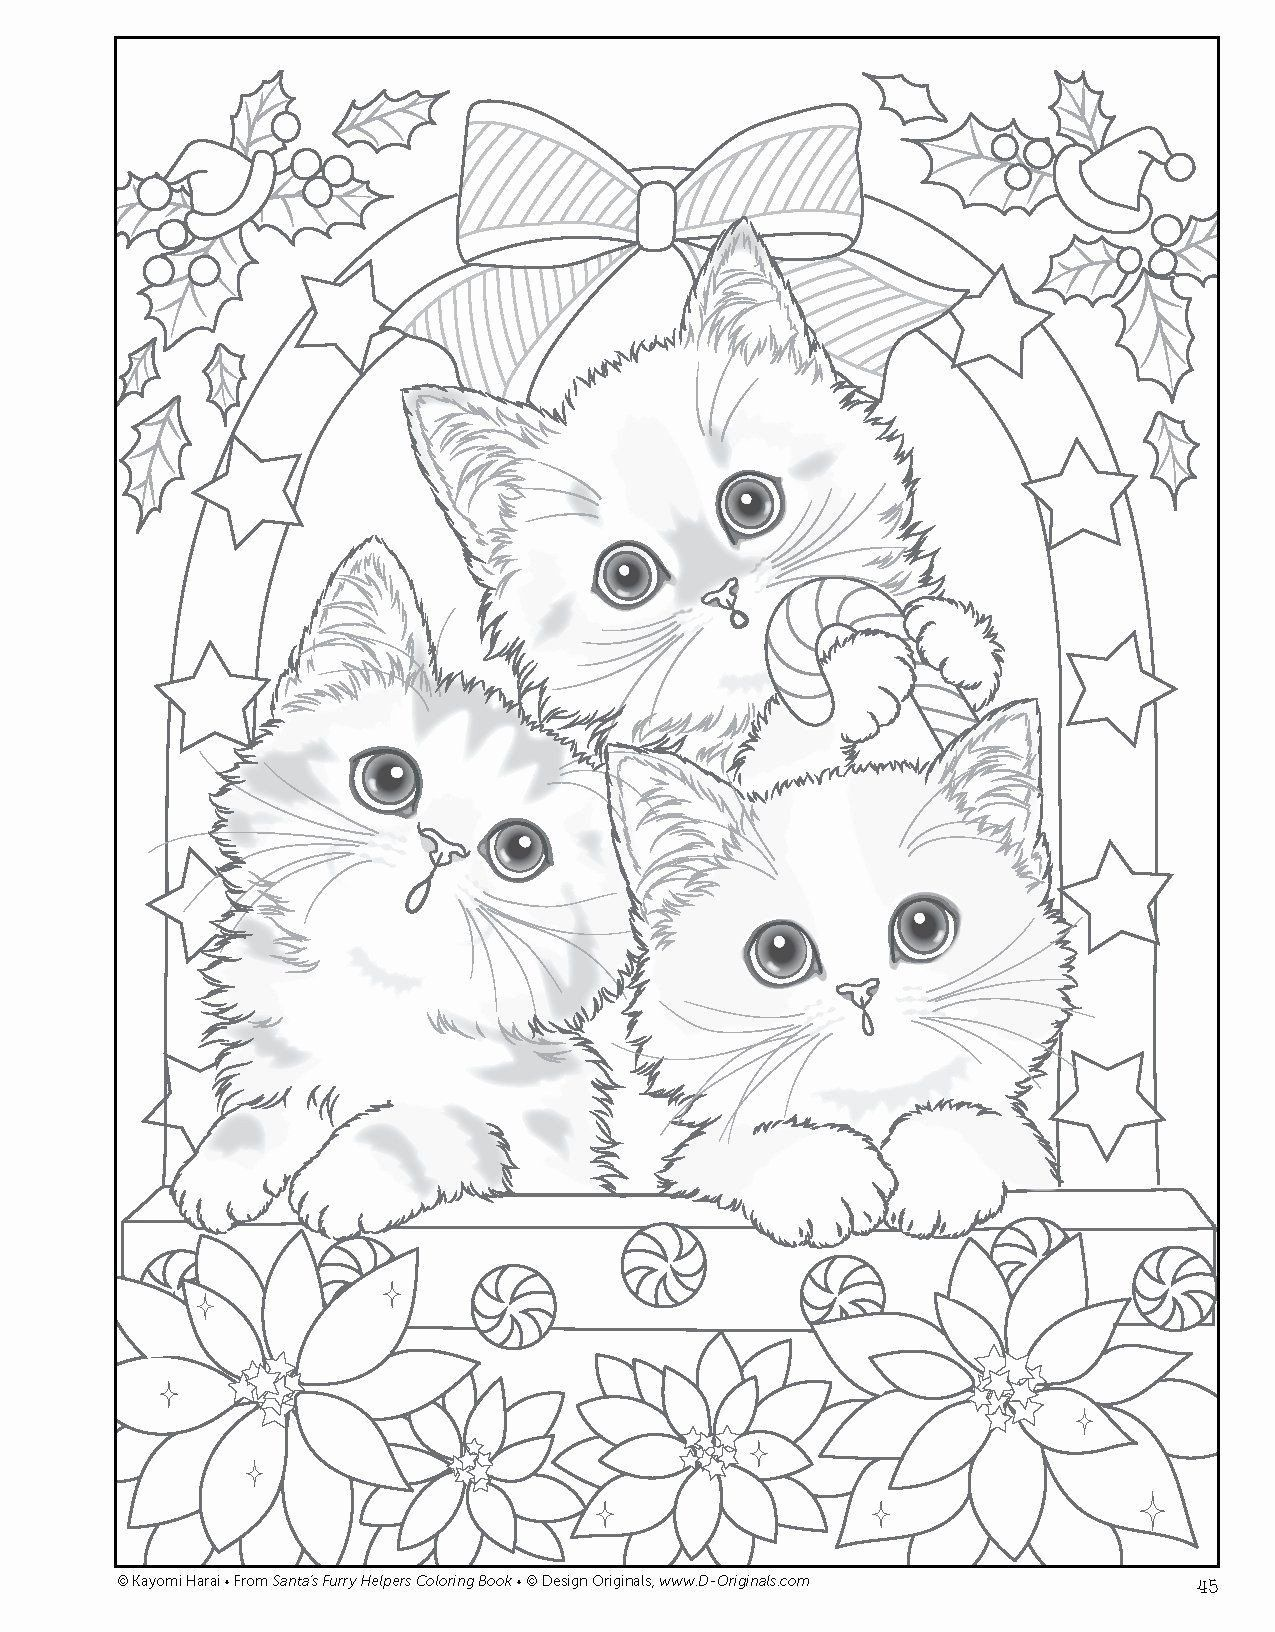 Christmas Coloring Pages 40 Printable Christmas Coloring Pages For Kids Boys Girls Teens Christmas Party Activity Christmas Gift Animal Coloring Pages Christmas Coloring Pages Animal Coloring Books